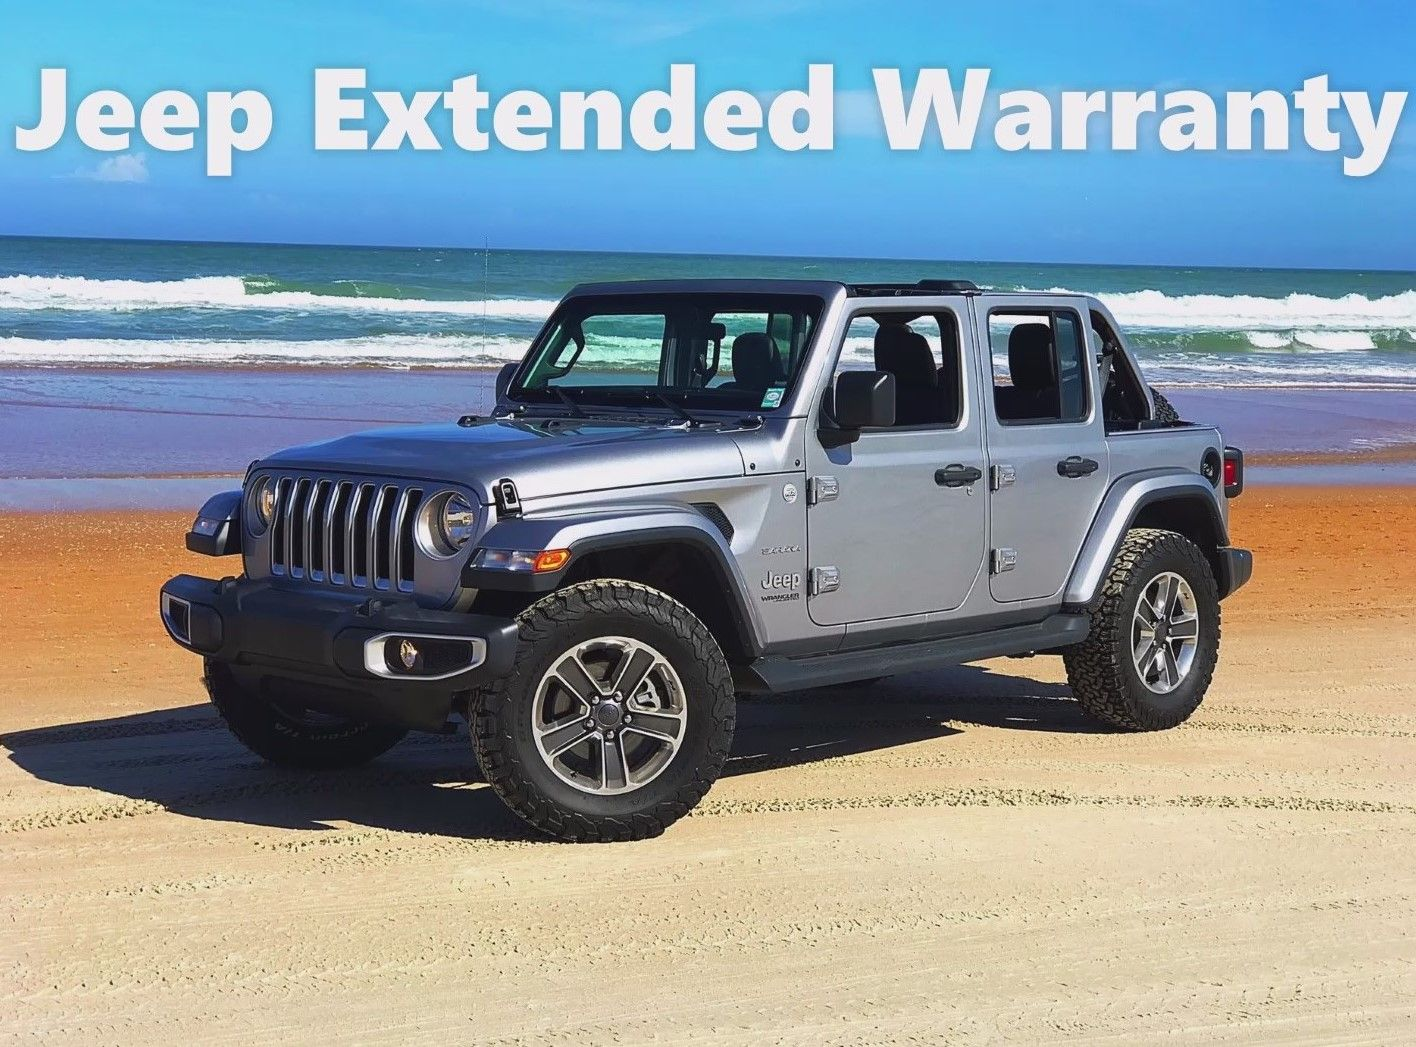 When Covering Your Jeep With A Extended Warranty Only Trust The